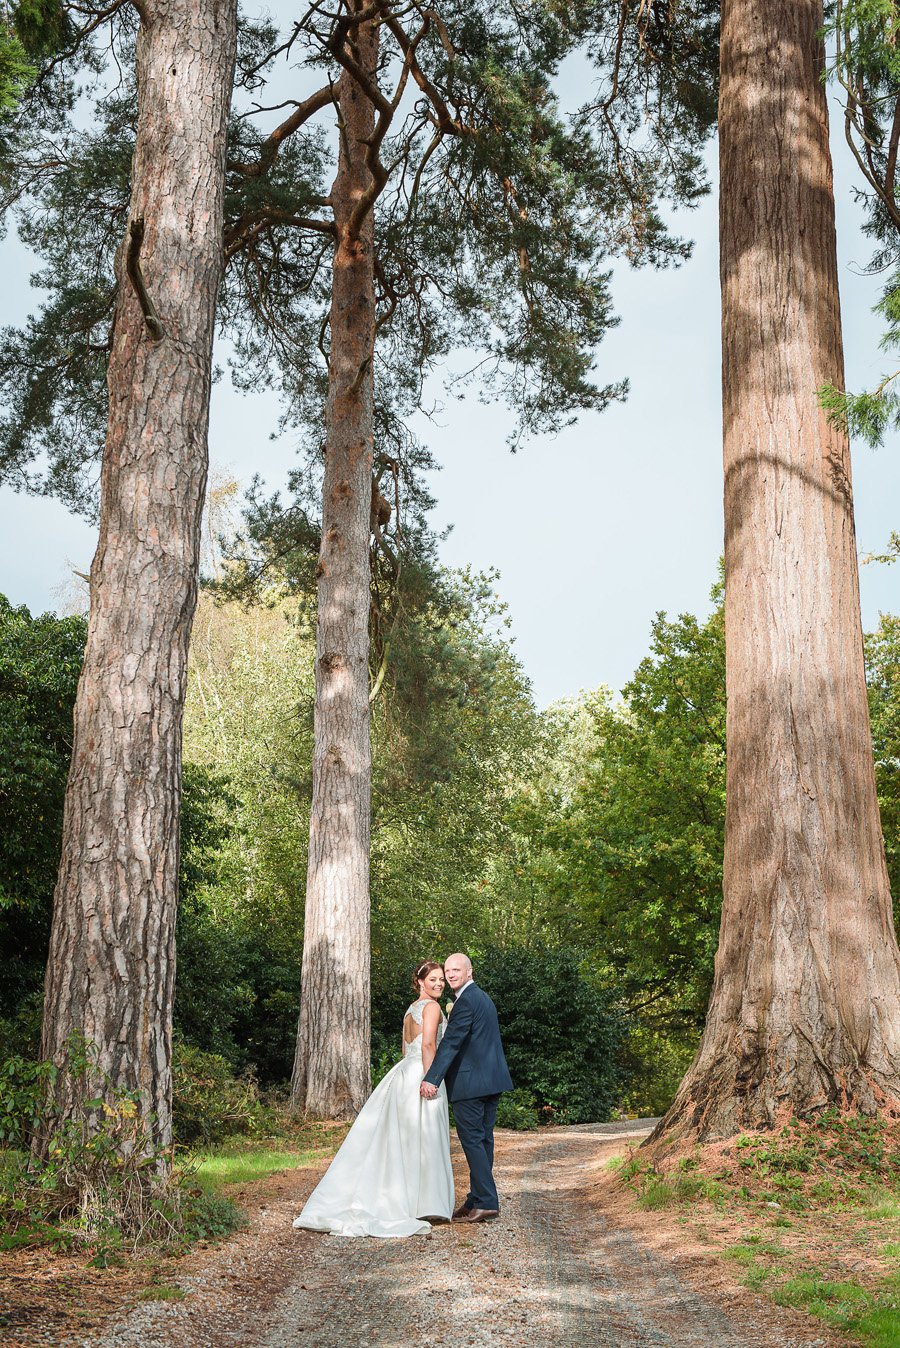 Stunning real wedding at Salomons Estate, images by Penny Young Photography (30)